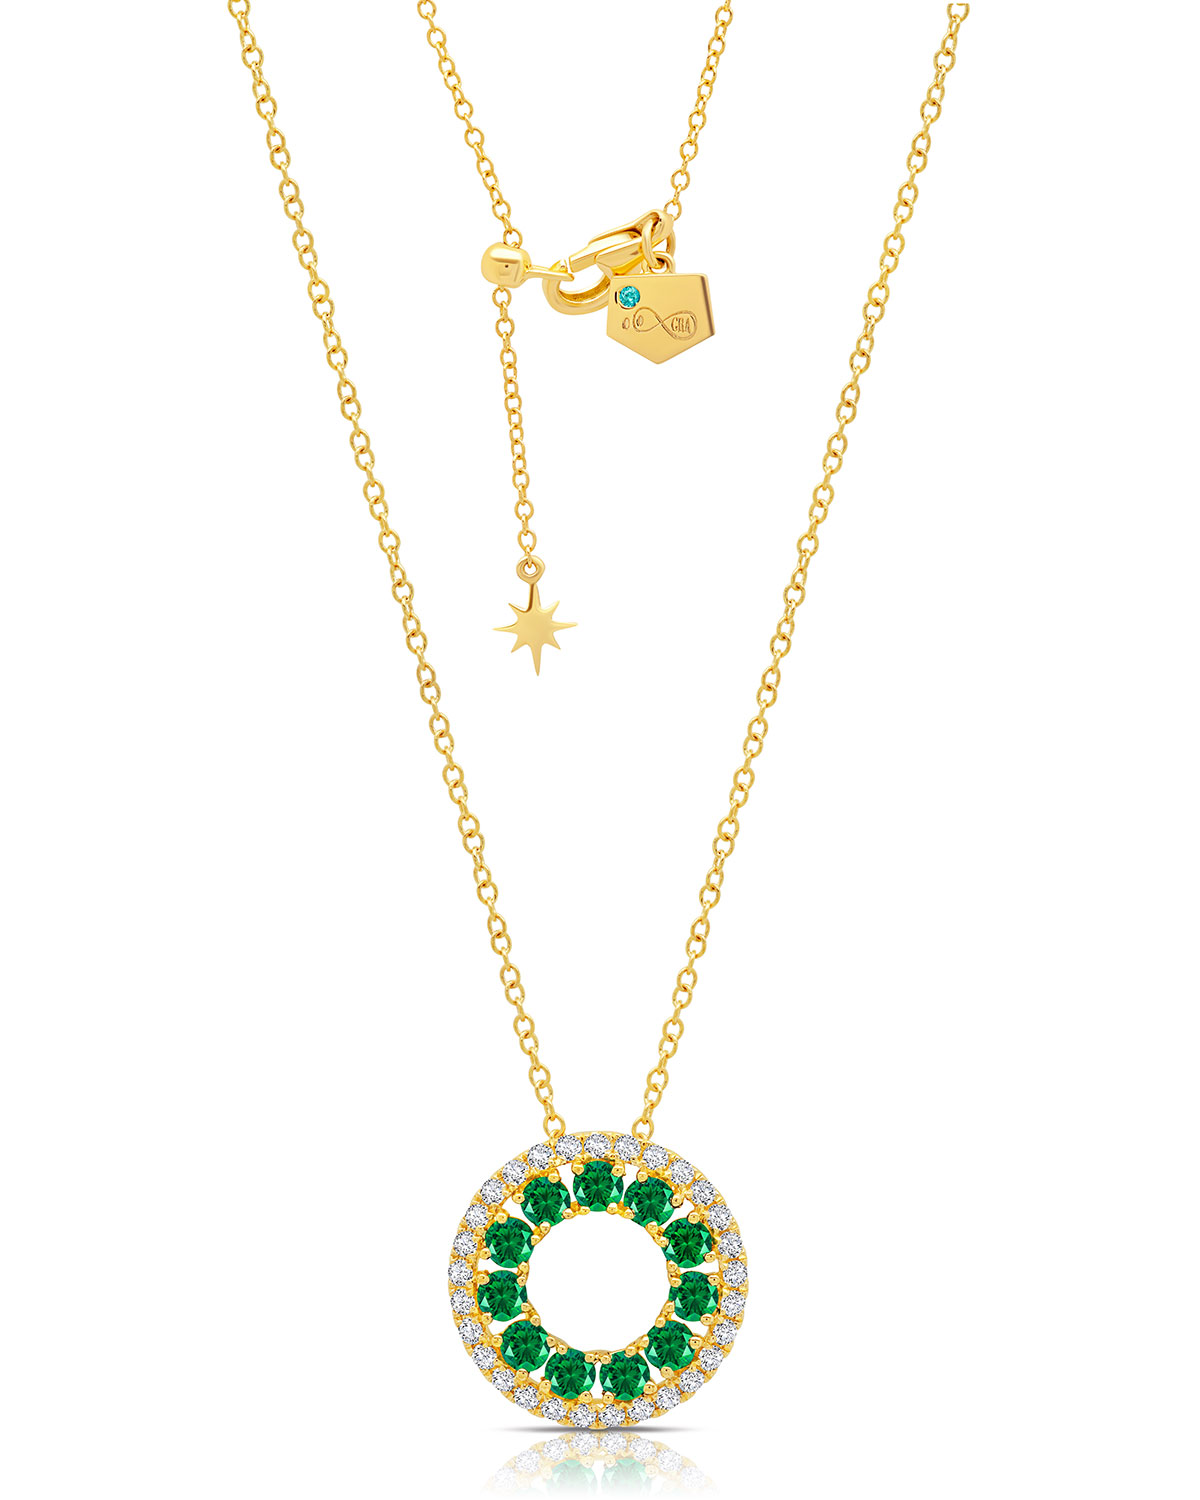 18k Emerald and Diamond 3-Sided Circle Necklace